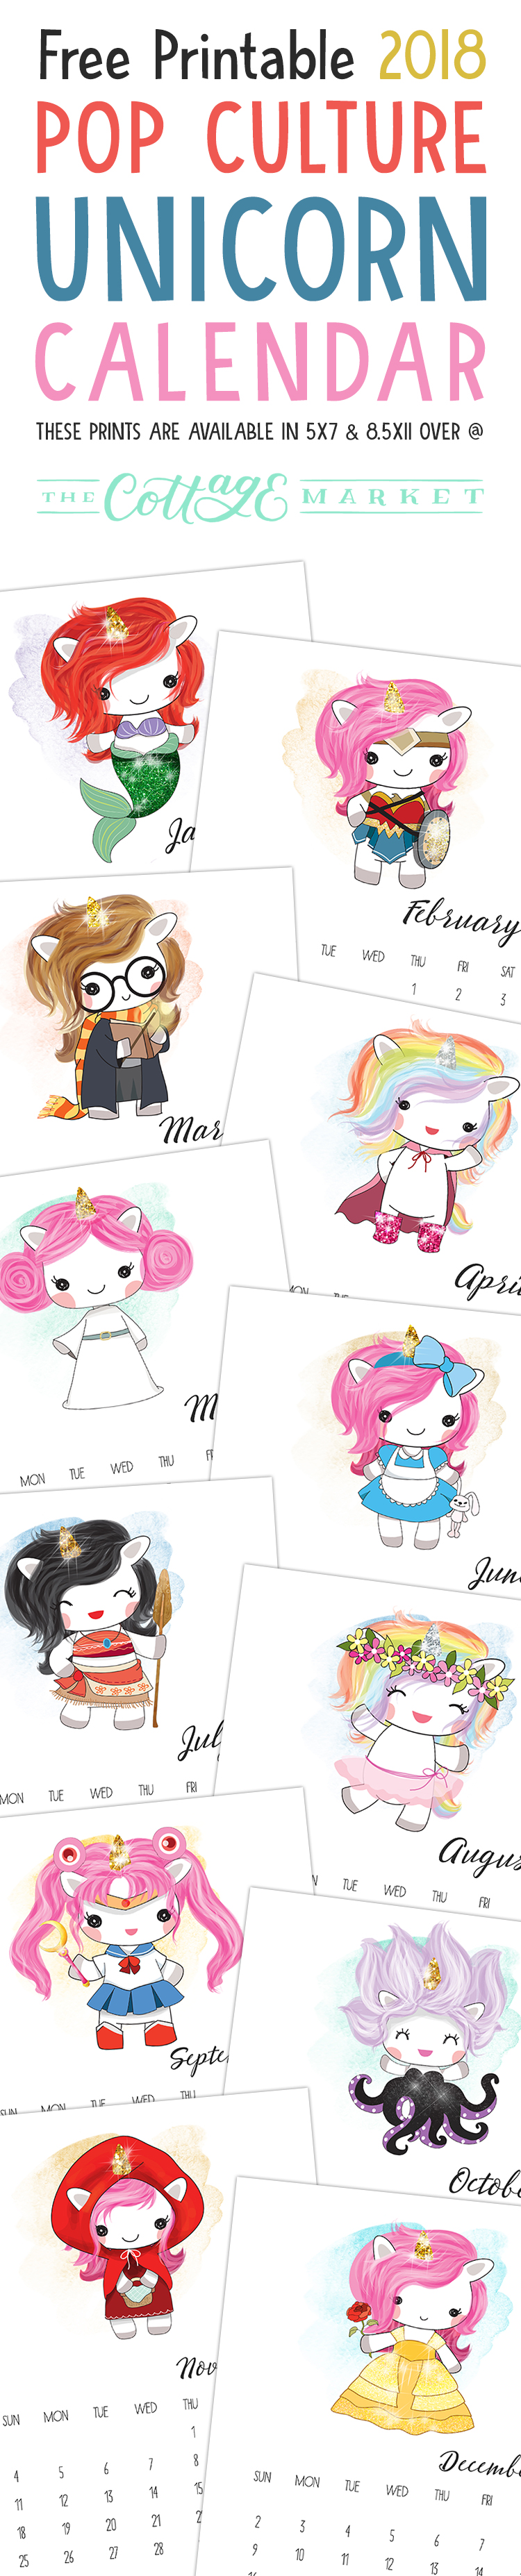 November Calendar Printables : Free printable pop culture unicorn calendar the